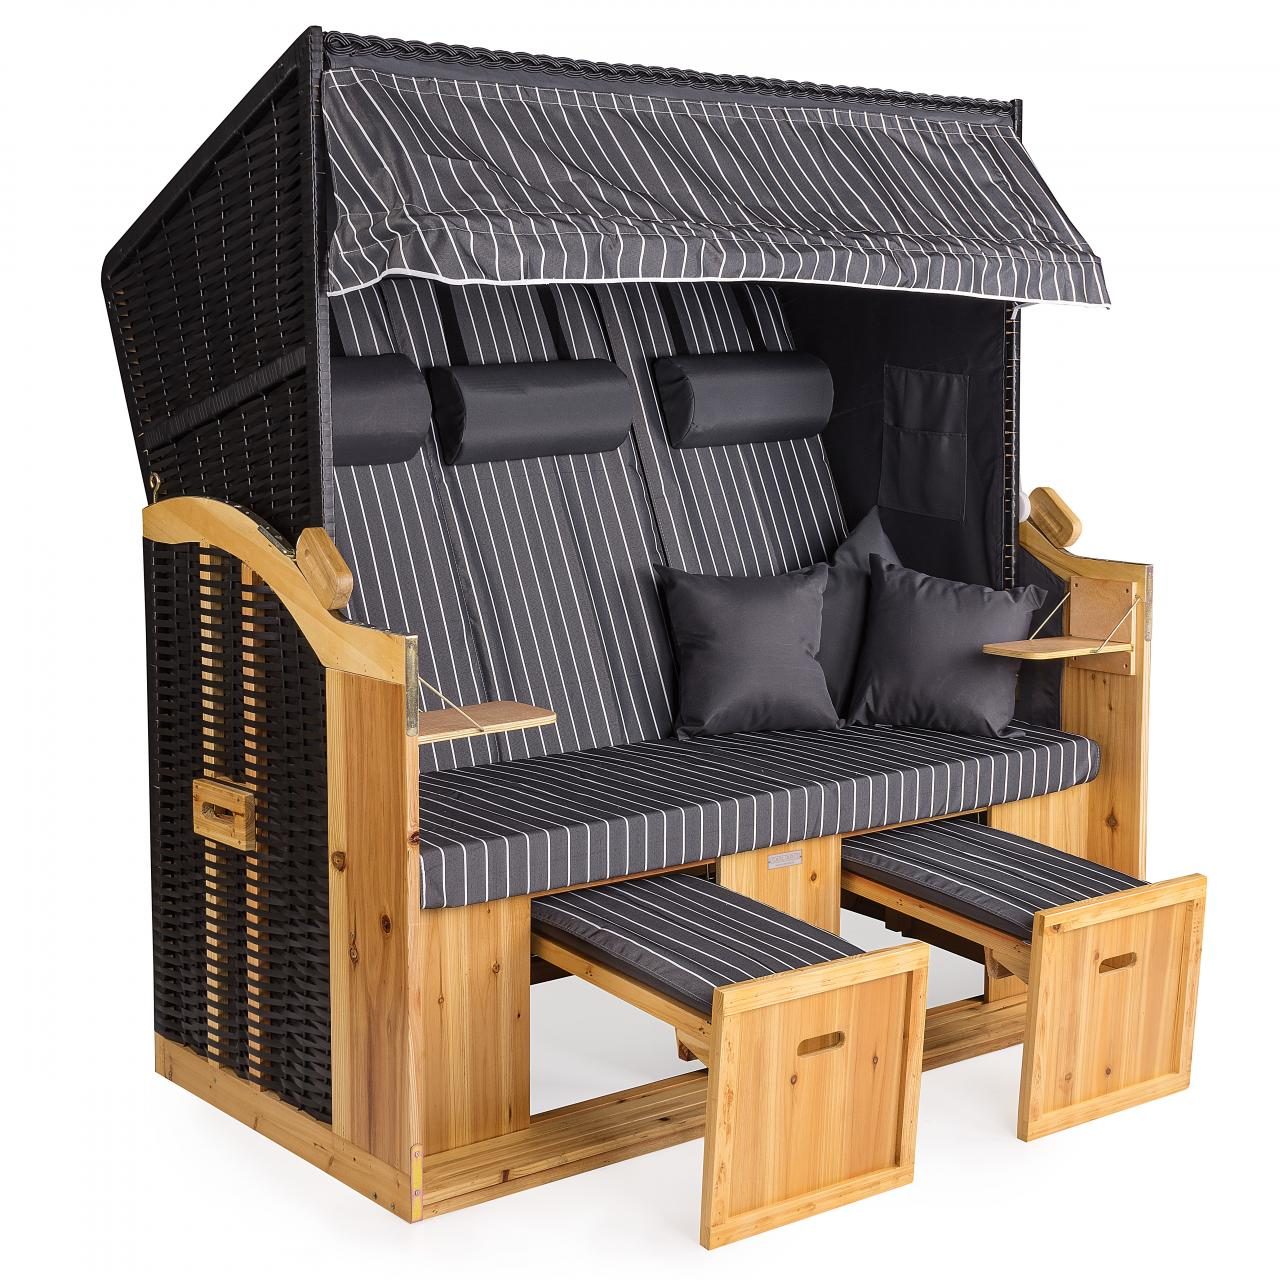 strandkorb xxl deluxe 160cm volllieger gartenliege ostsee nordsee gartenm bel ebay. Black Bedroom Furniture Sets. Home Design Ideas